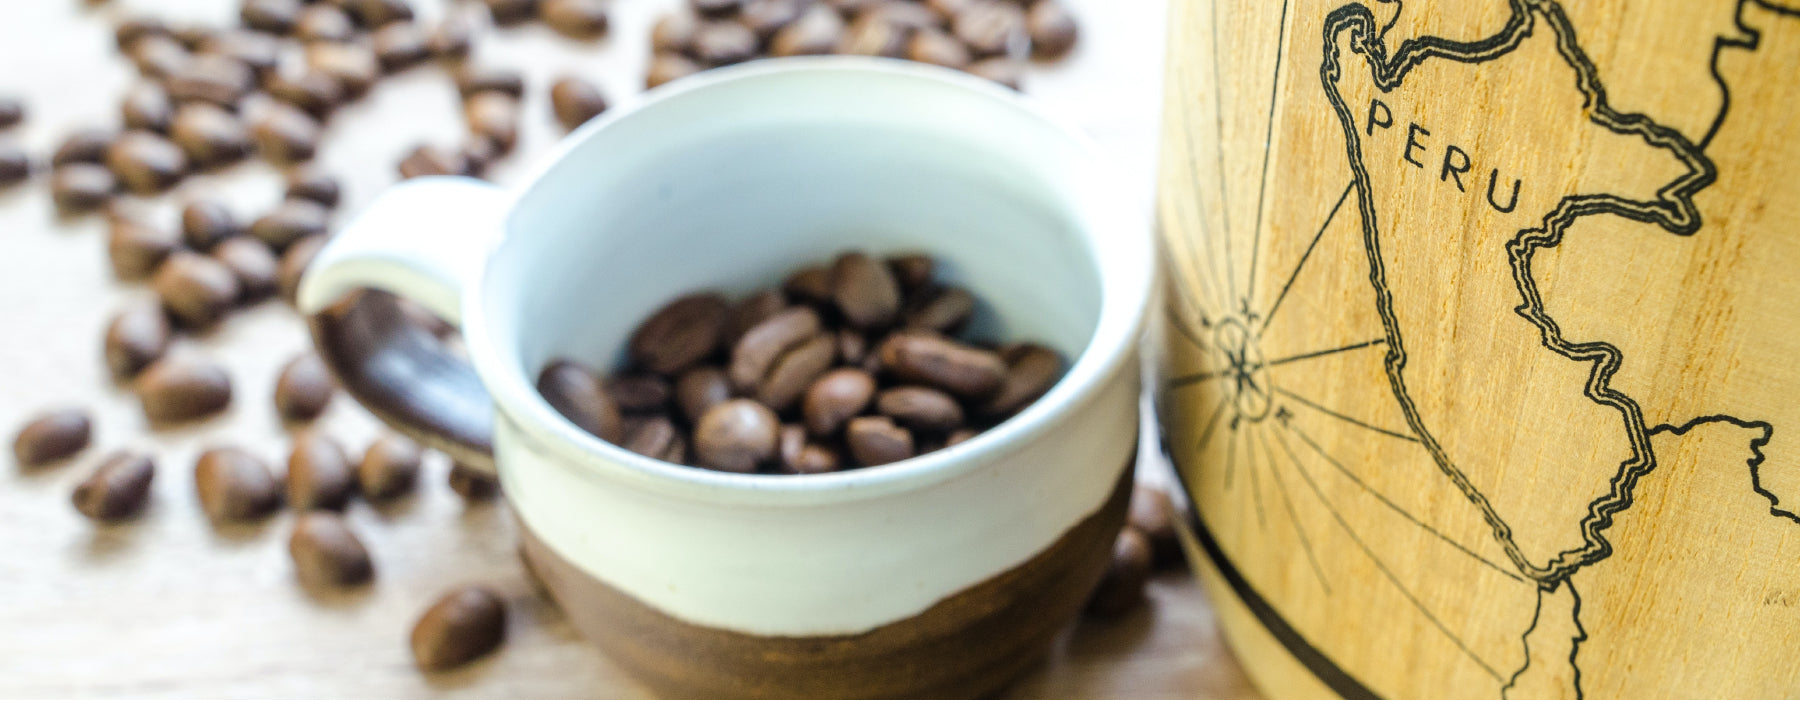 Specialty Coffee From Around The World - Coffee Life by EspressoWorks